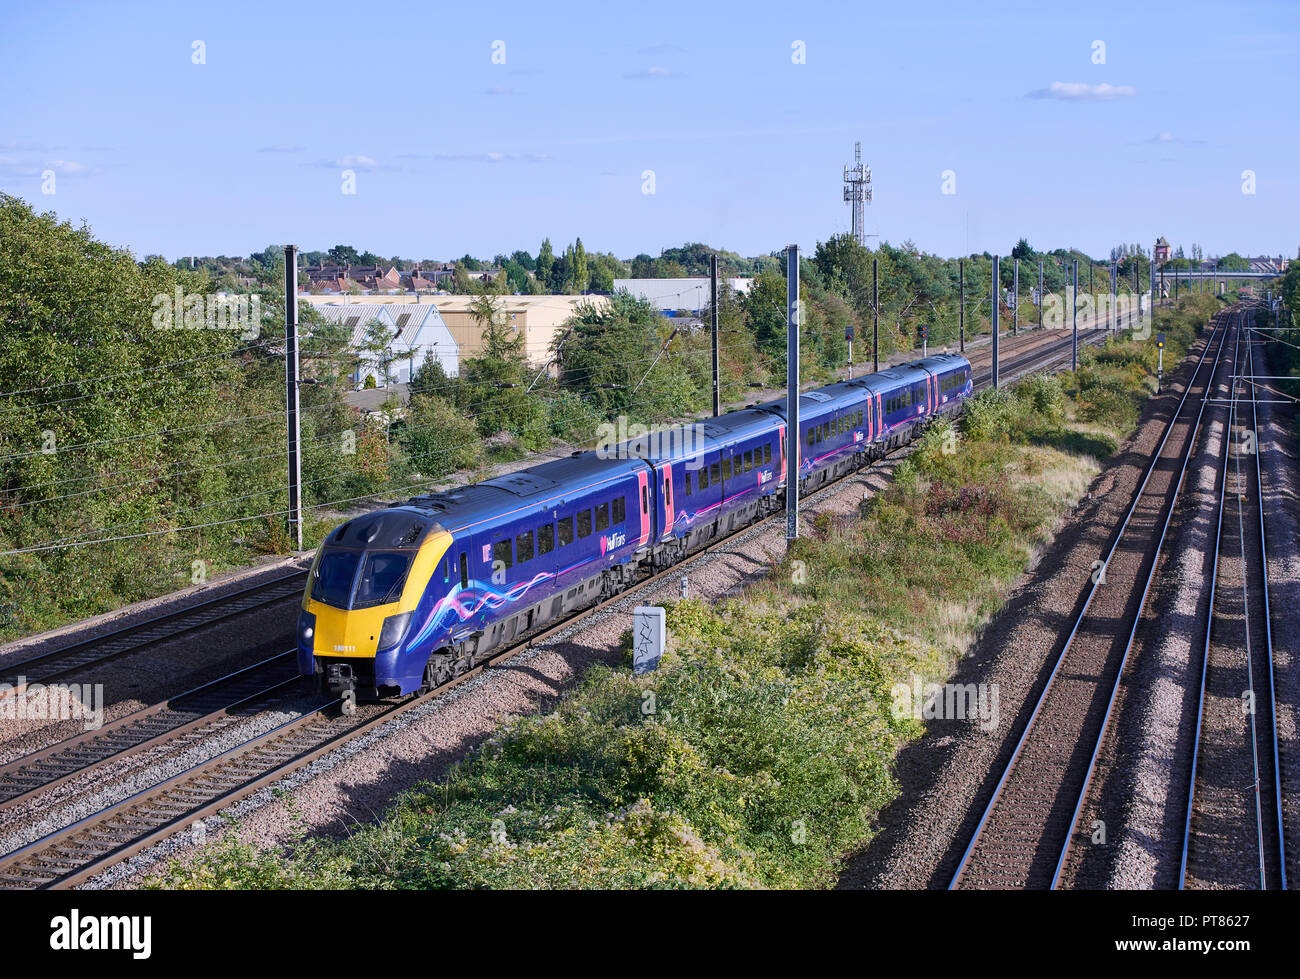 Hull Trains 180 111 froms 1H04 1348 London Kings Cross to Hull service through Werrington Junction on the East Coast Mainline on 24/09/18. - Stock Image